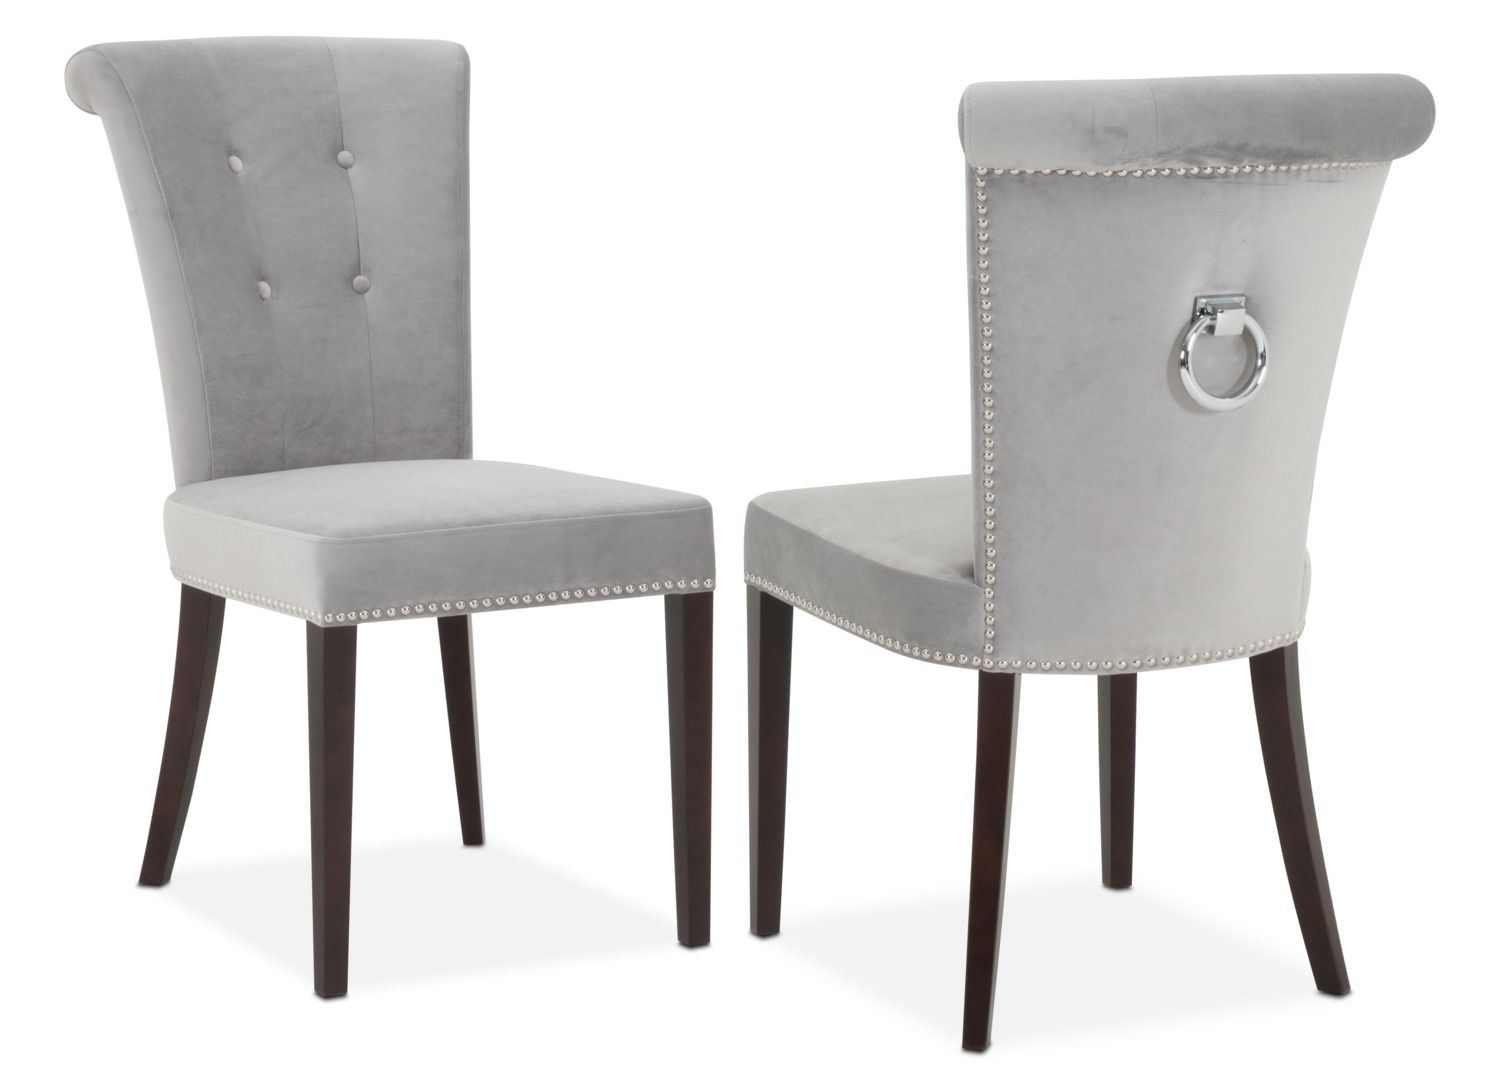 Put A Ring On It Outfit Your Dining Ensemble With The Polished Look Of The Calloway Side Chair Fitting Snugly Under Standard Dining Tabl Faixada De Casa Casas